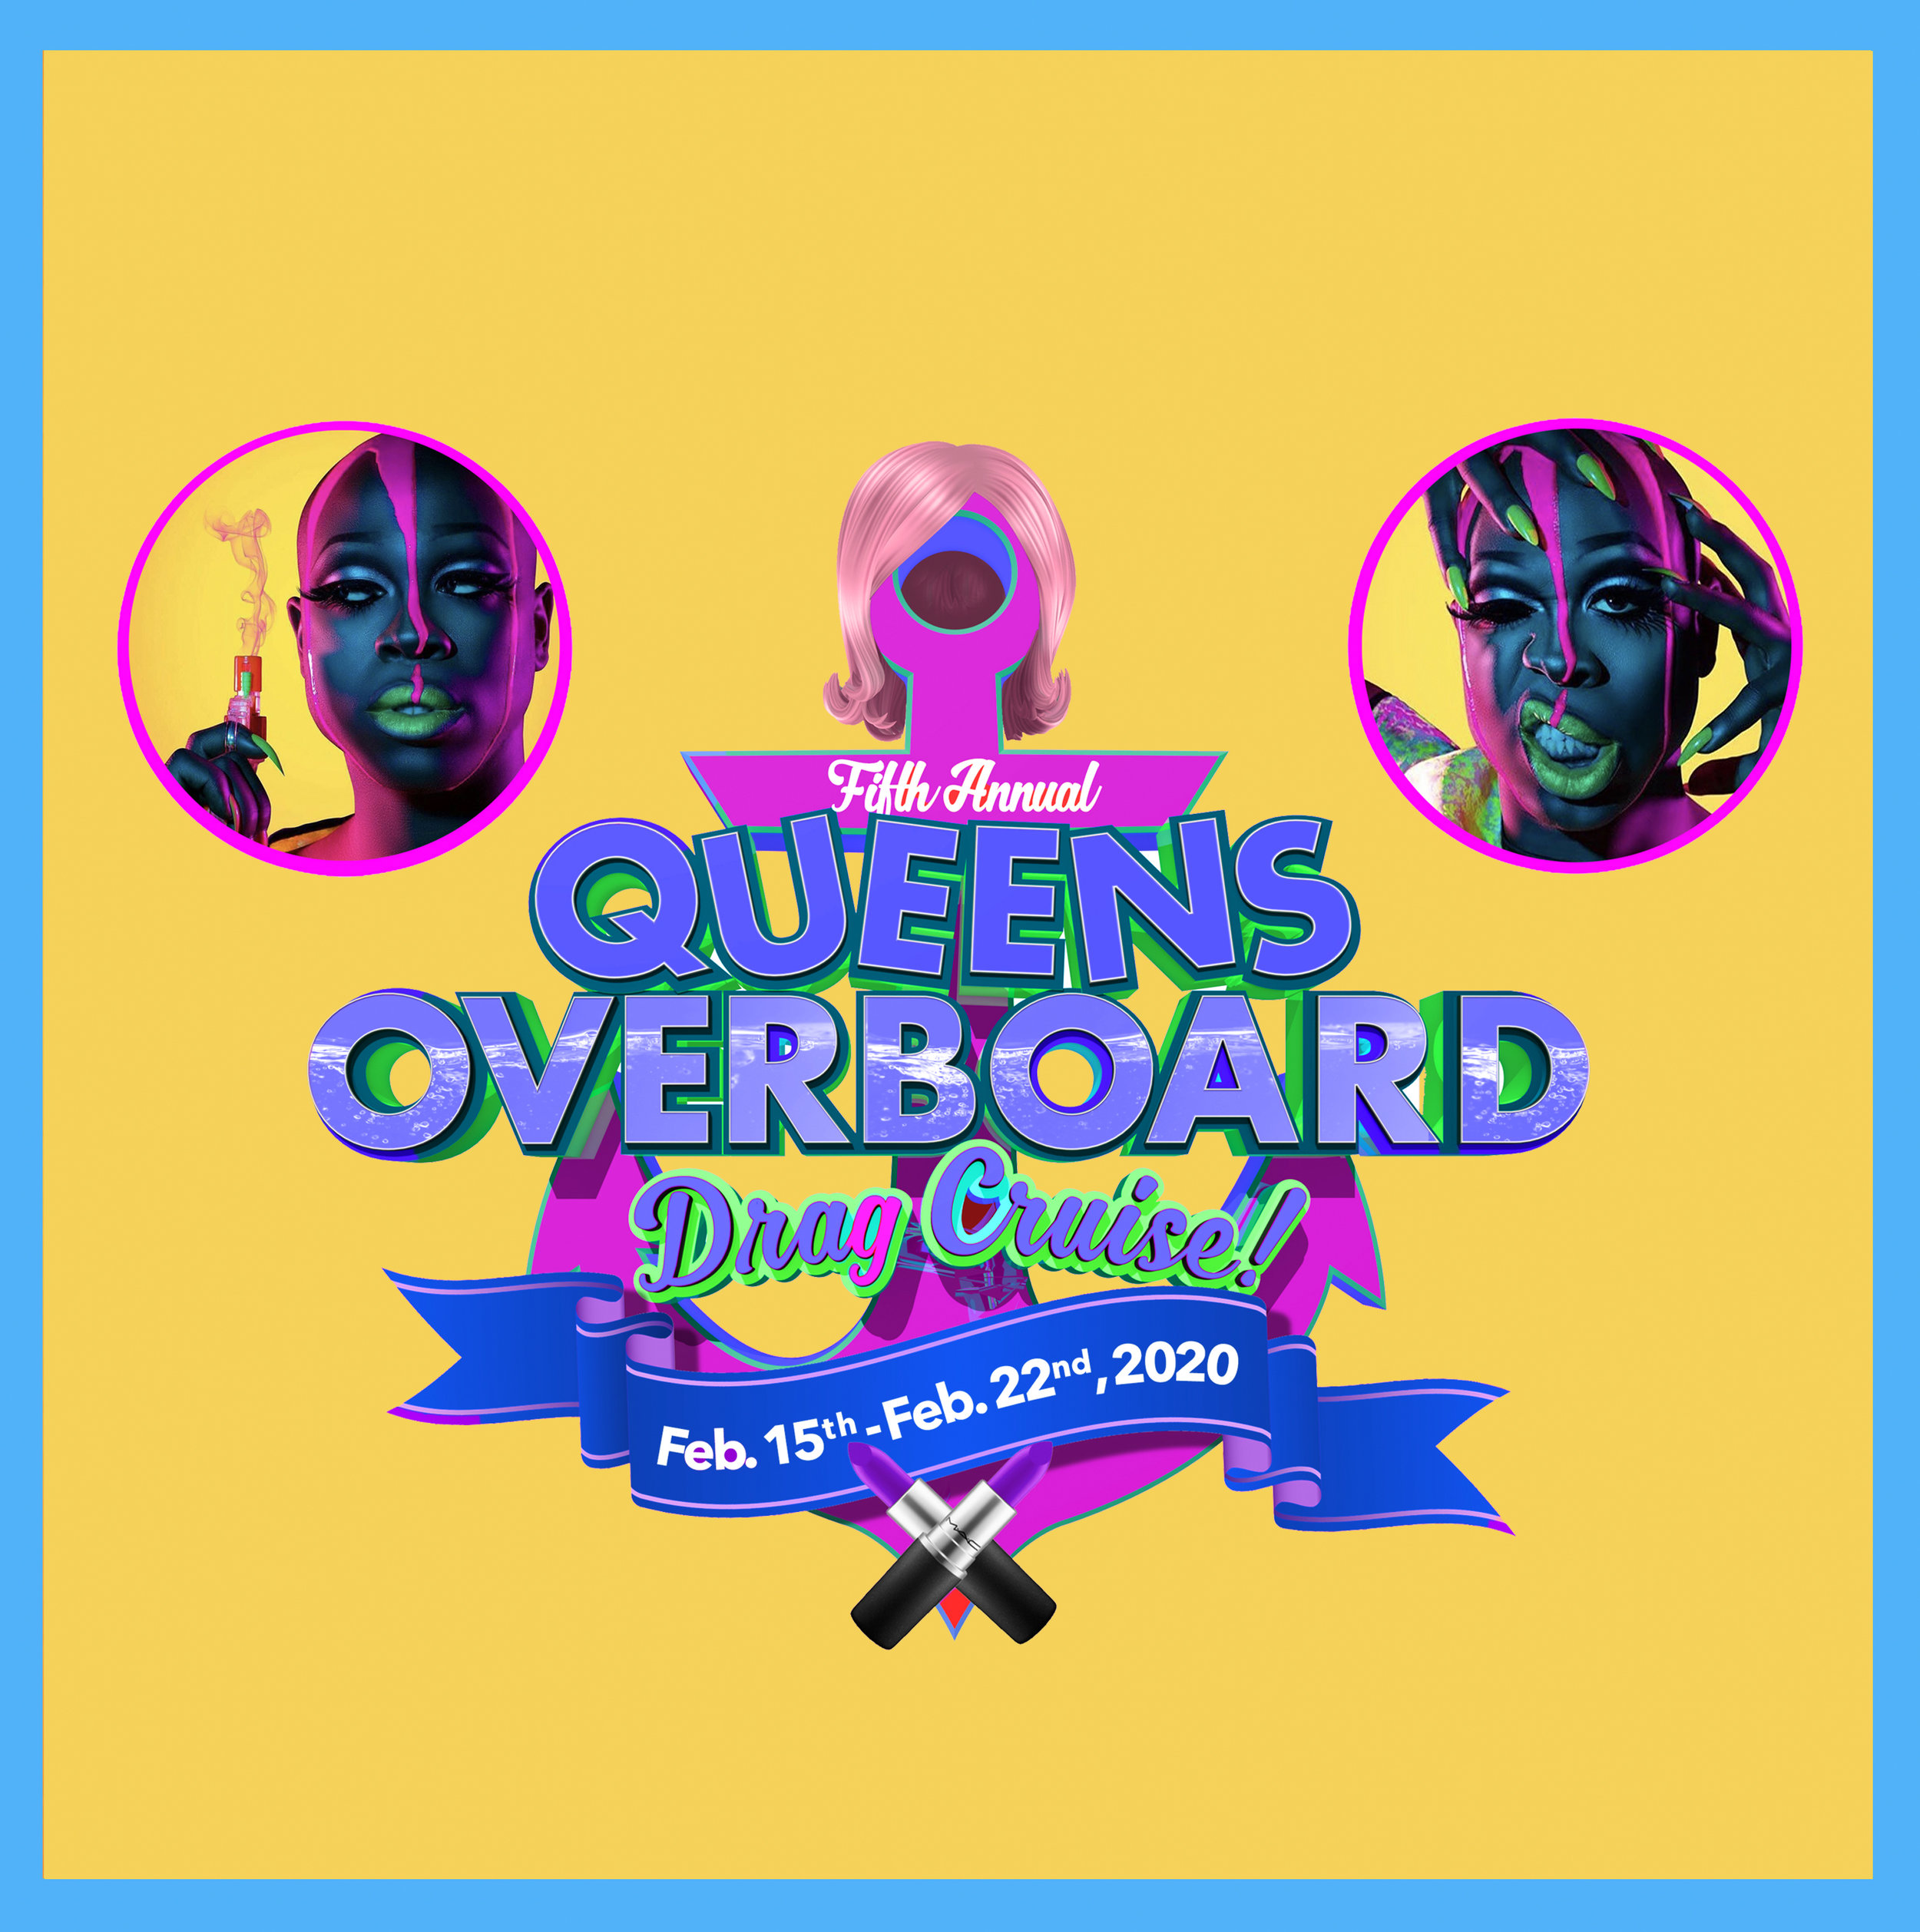 QUEENS OVERBOARD DRAG CRUISE - FEBRUARY 15-22ND 2020